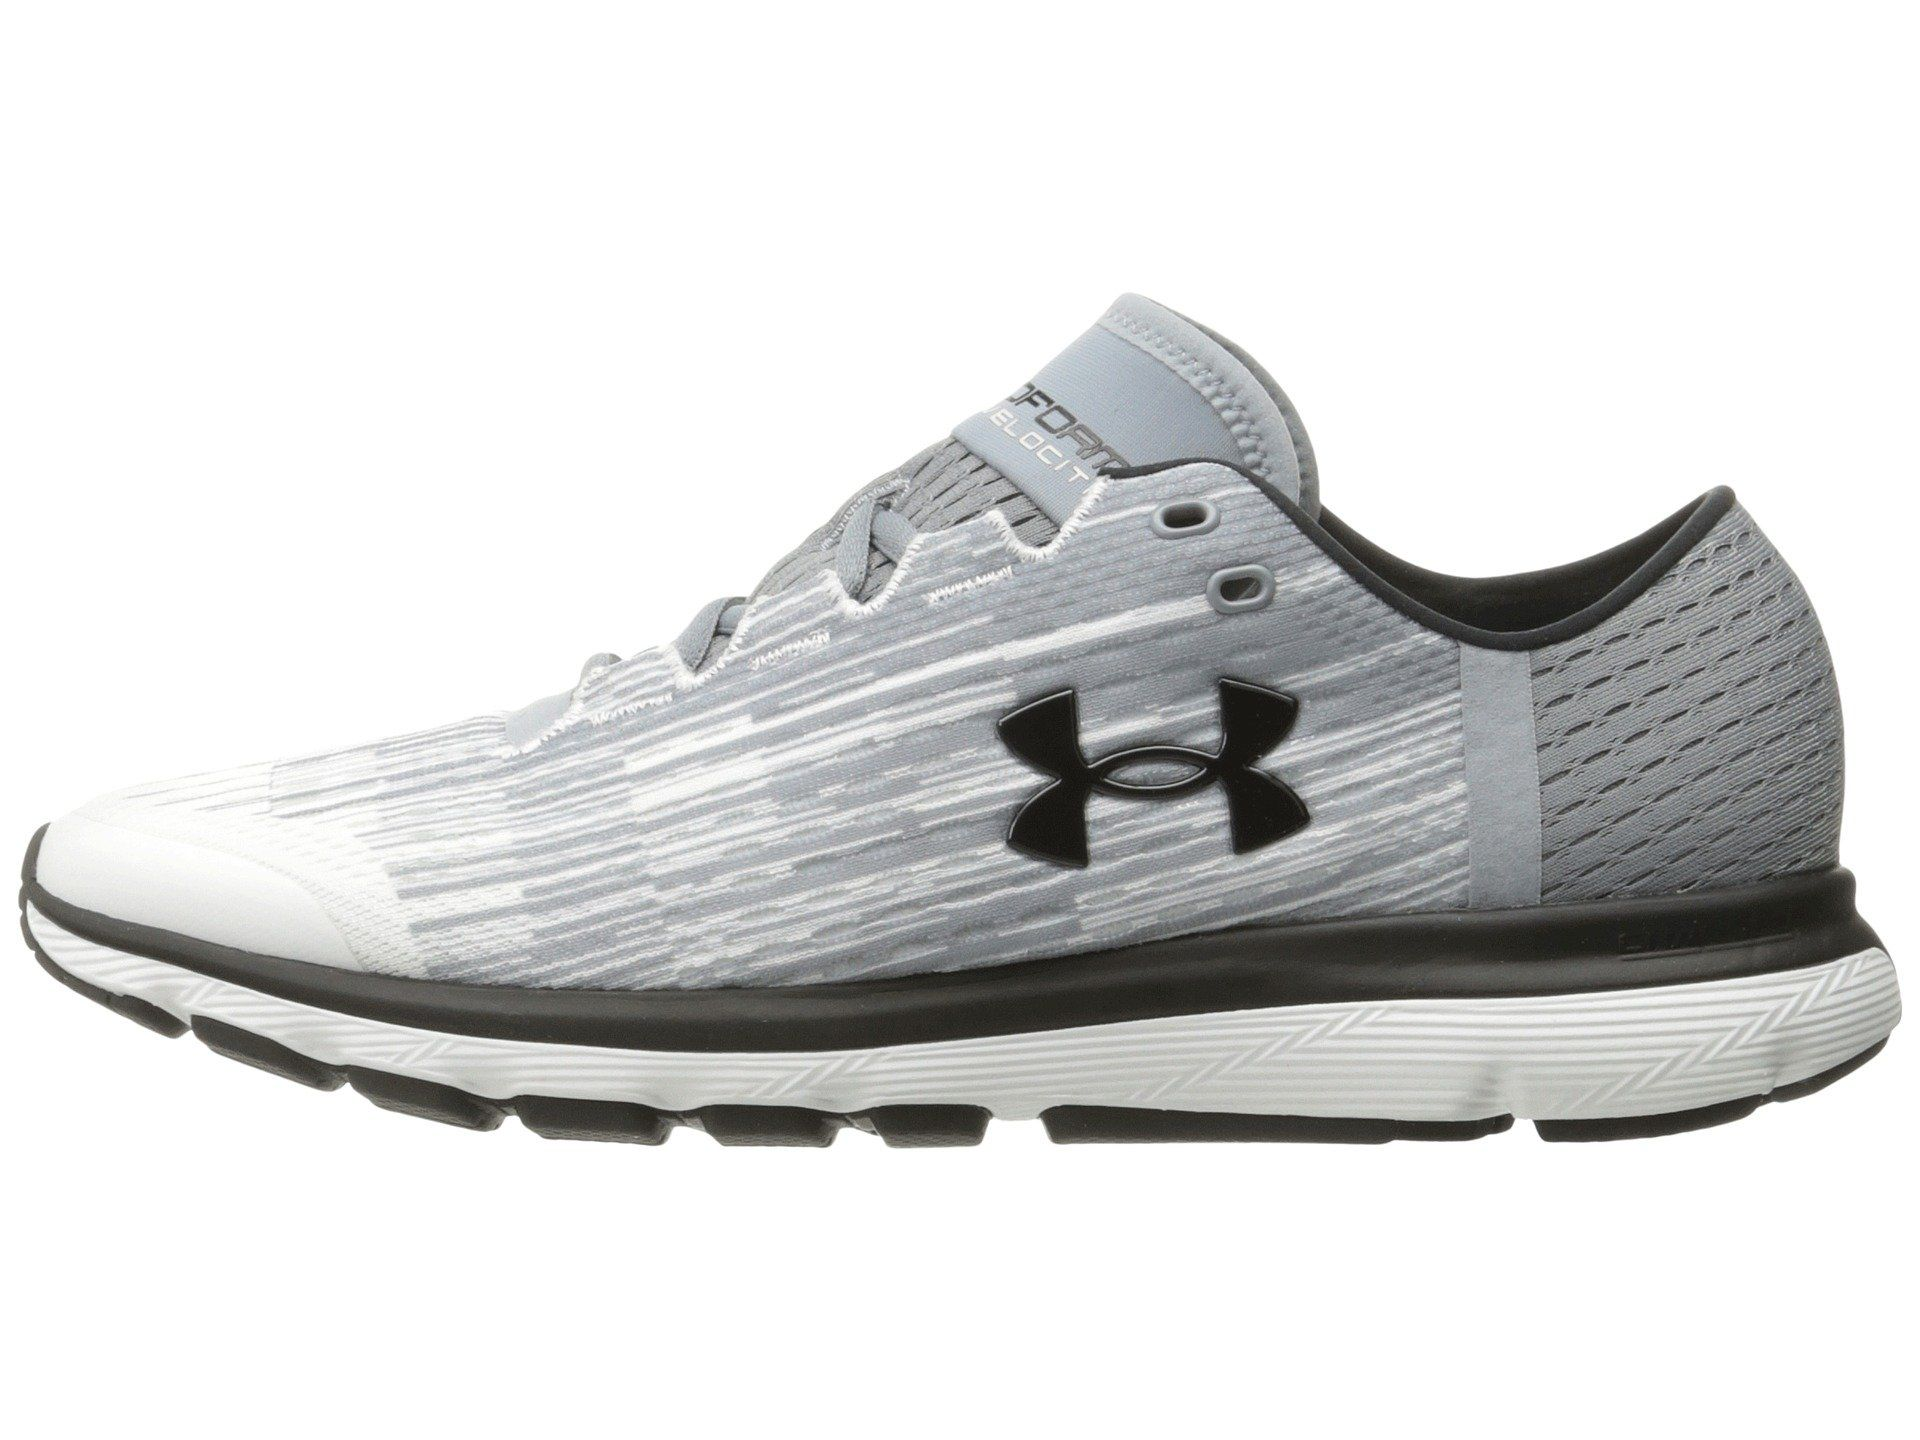 Fitness, Running & Yoga Humor Under Armour Charged Bandit Mens Running Shoes Grey Blue Cushioned Trainers Men Sporting Goods